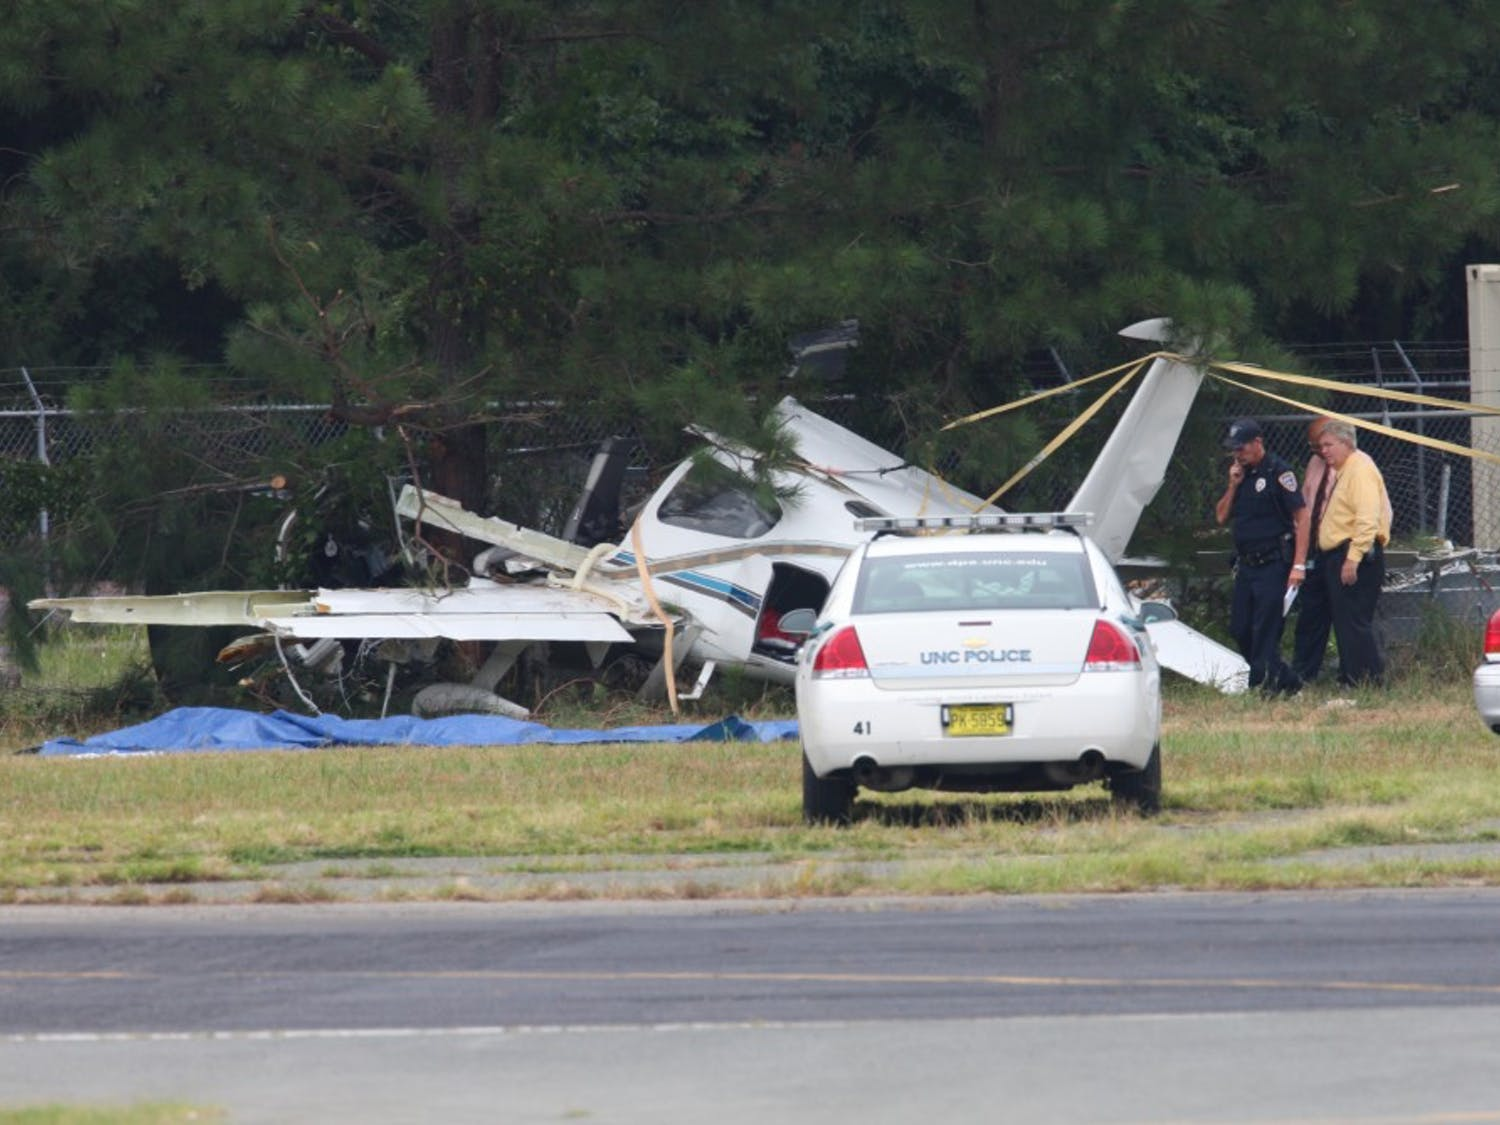 Police investigate a plane crashed at the Horace Williams airport Monday.